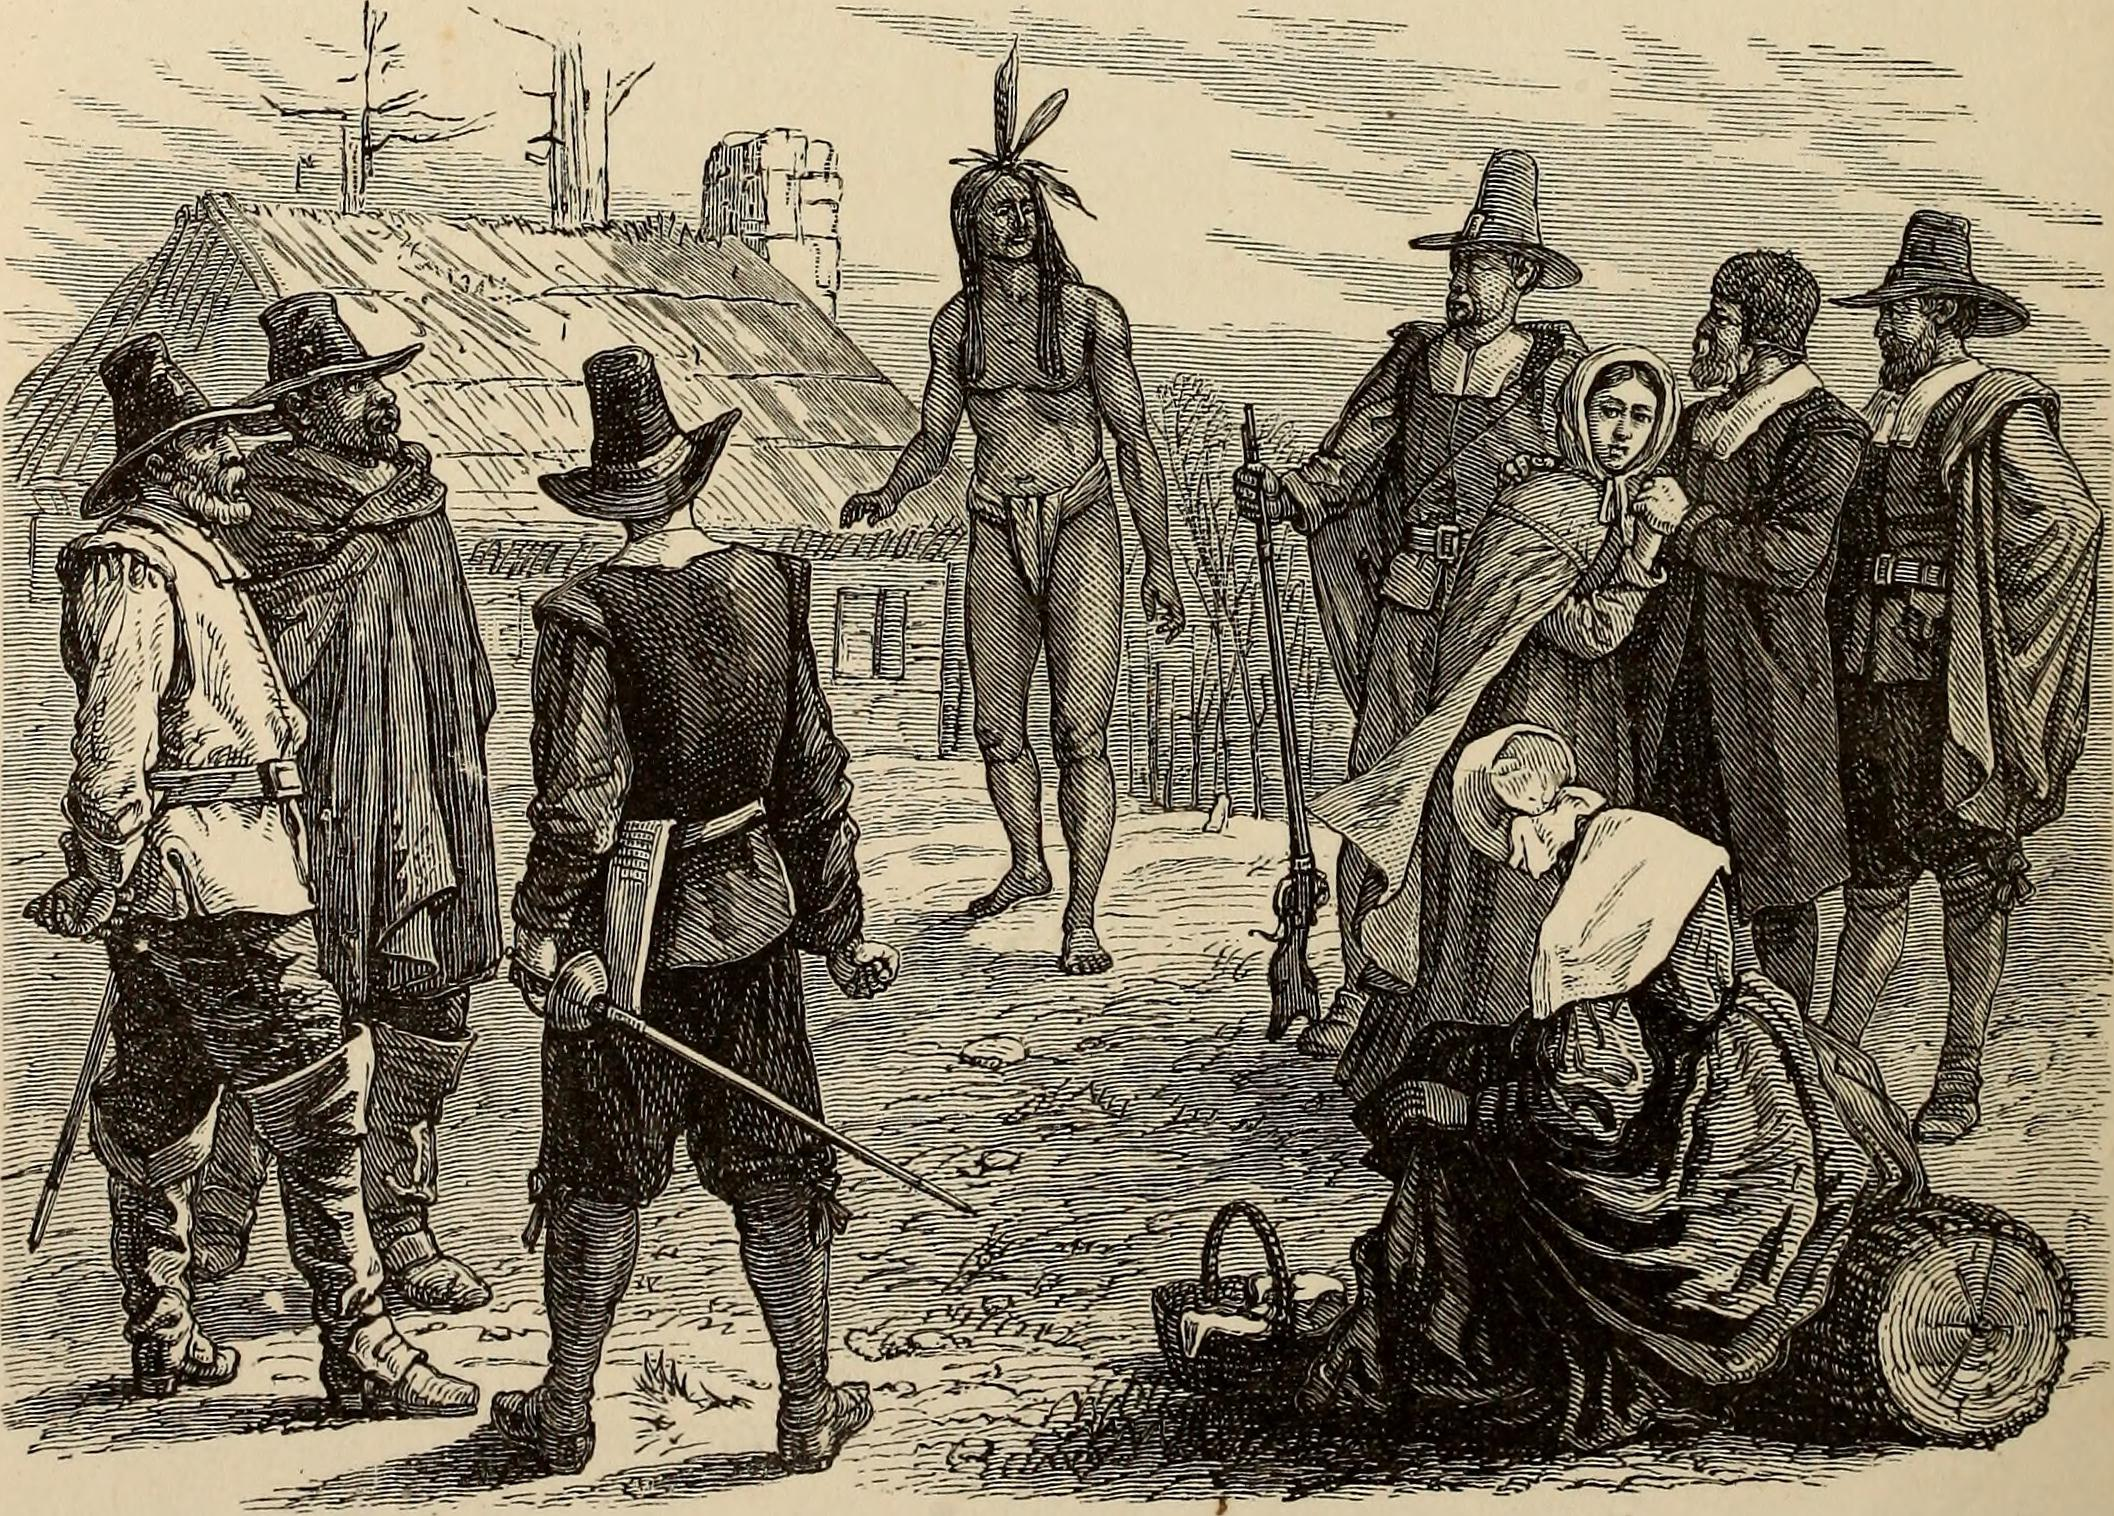 Squanto and the English Colonists